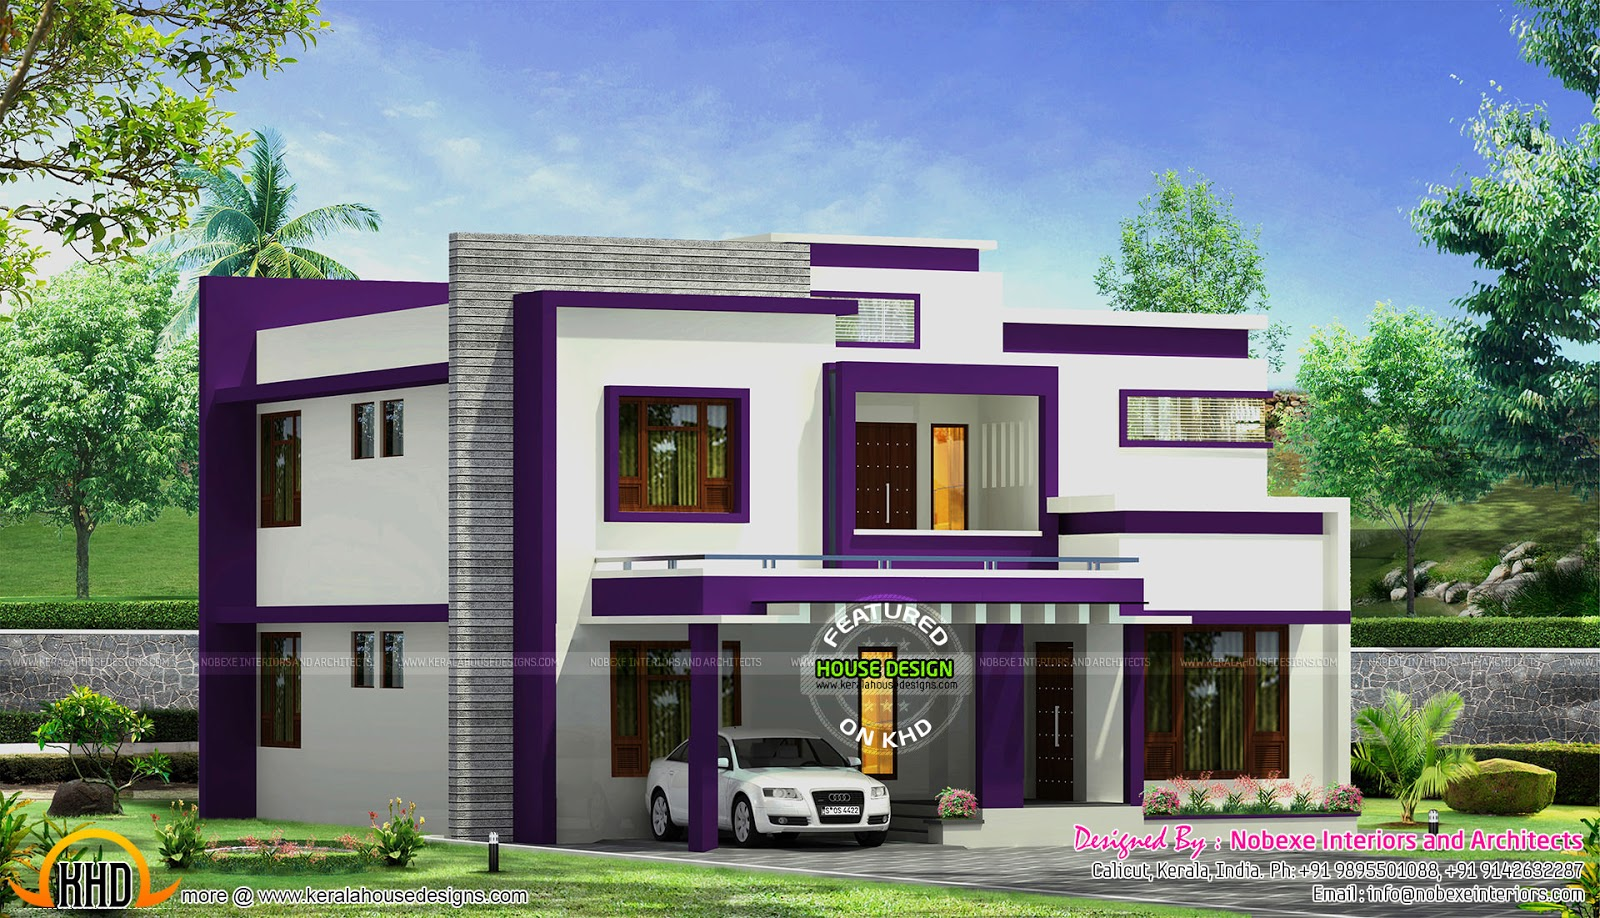 Contemporary home design by nobexe interiors kerala home for Home style design ideas